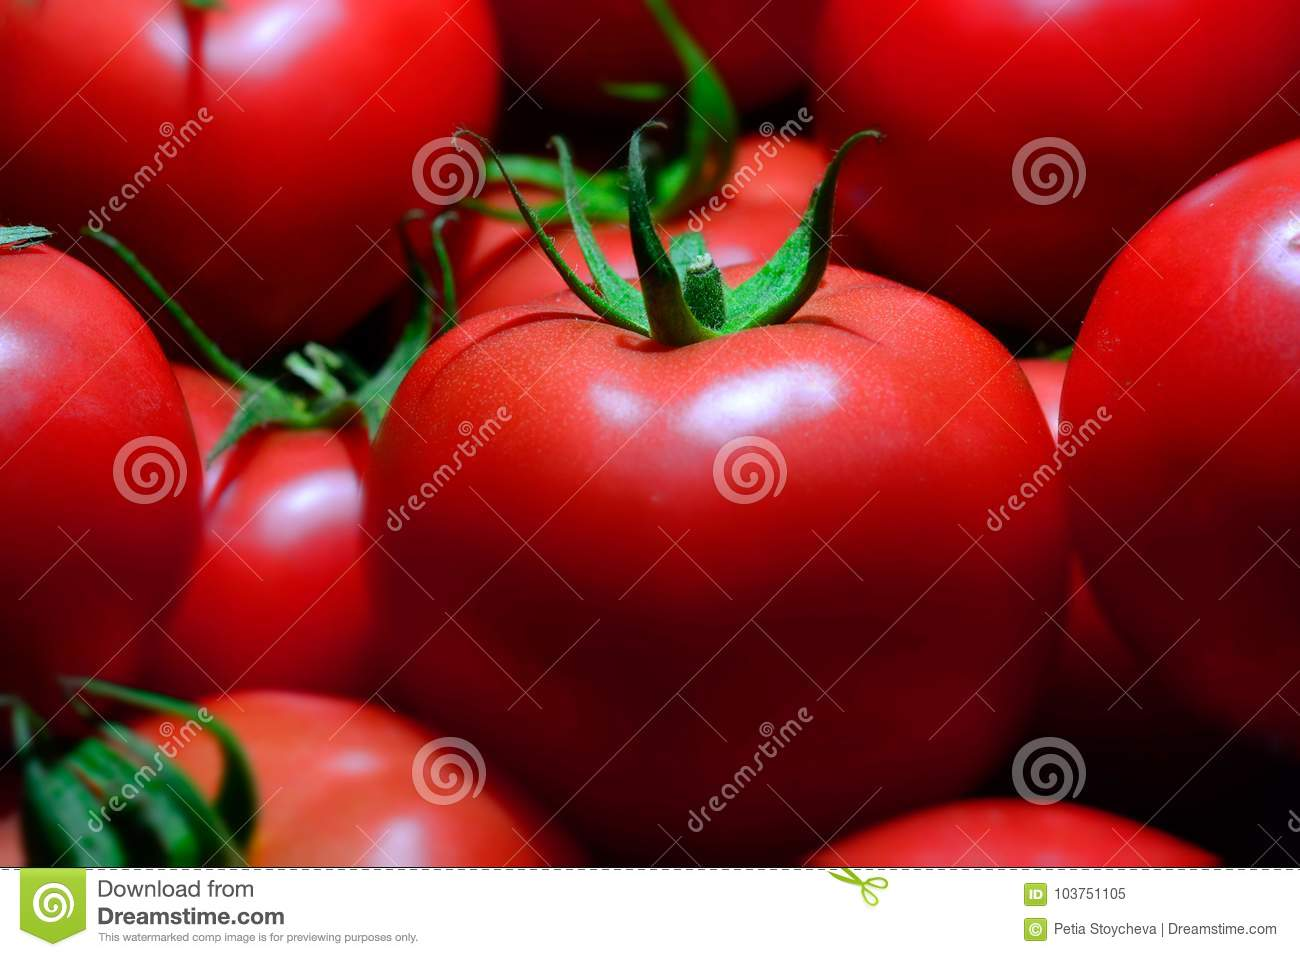 Group of Fresh red tomatoes, closeup